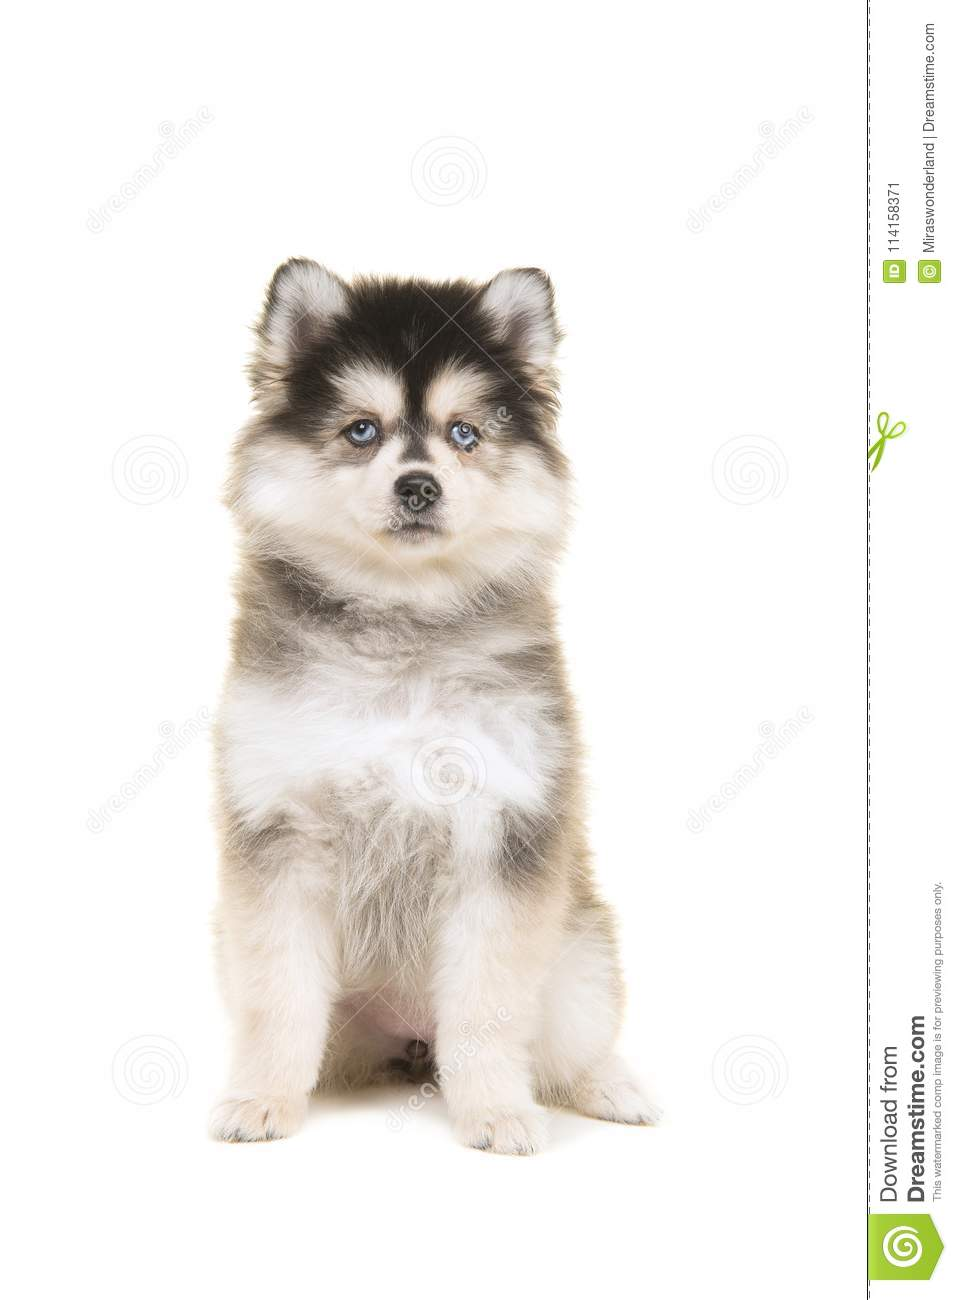 Cute pomsky puppy sitting and looking at the camera